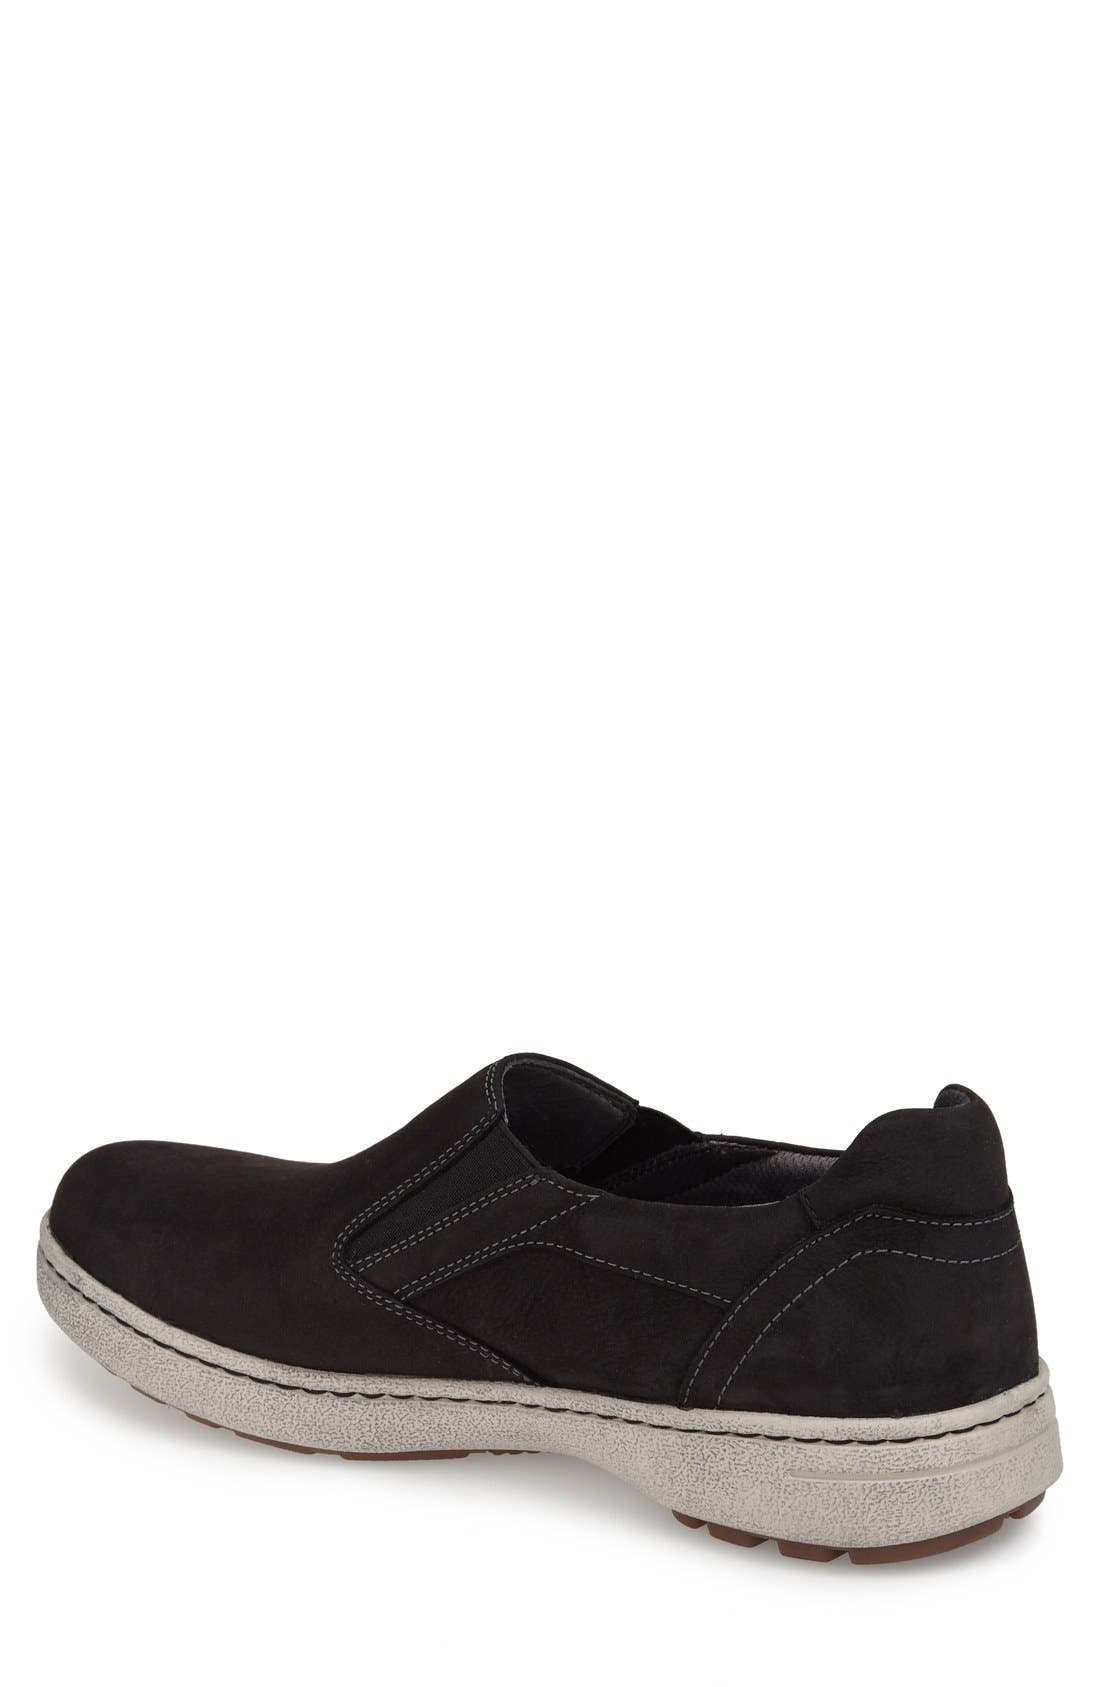 'Viktor' Water Resistant Slip-On Sneaker,                             Alternate thumbnail 2, color,                             BLACK MILLED NUBUCK LEATHER